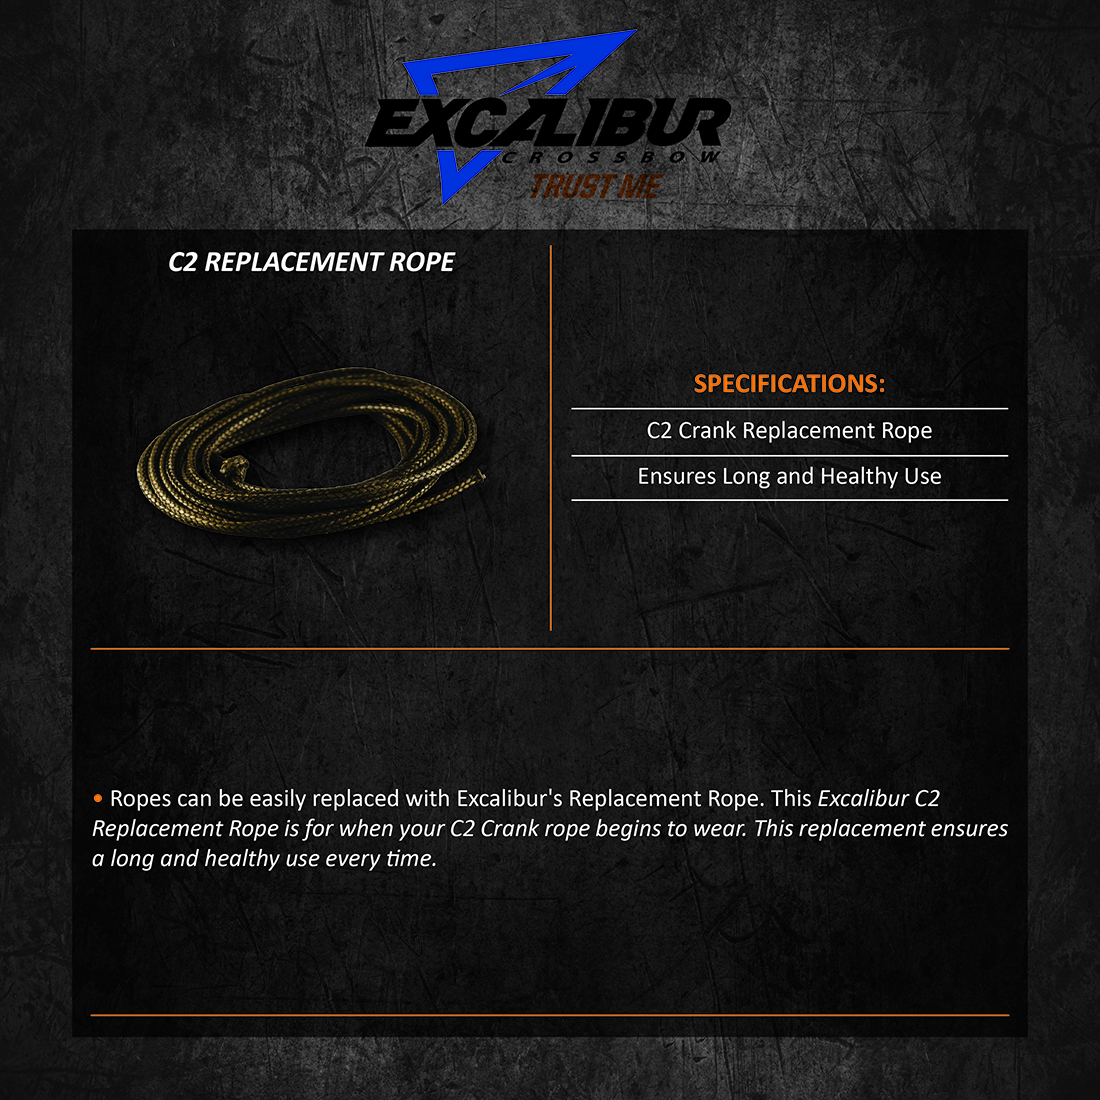 Excalibur_C2_Replacement_Rope_Product_Description